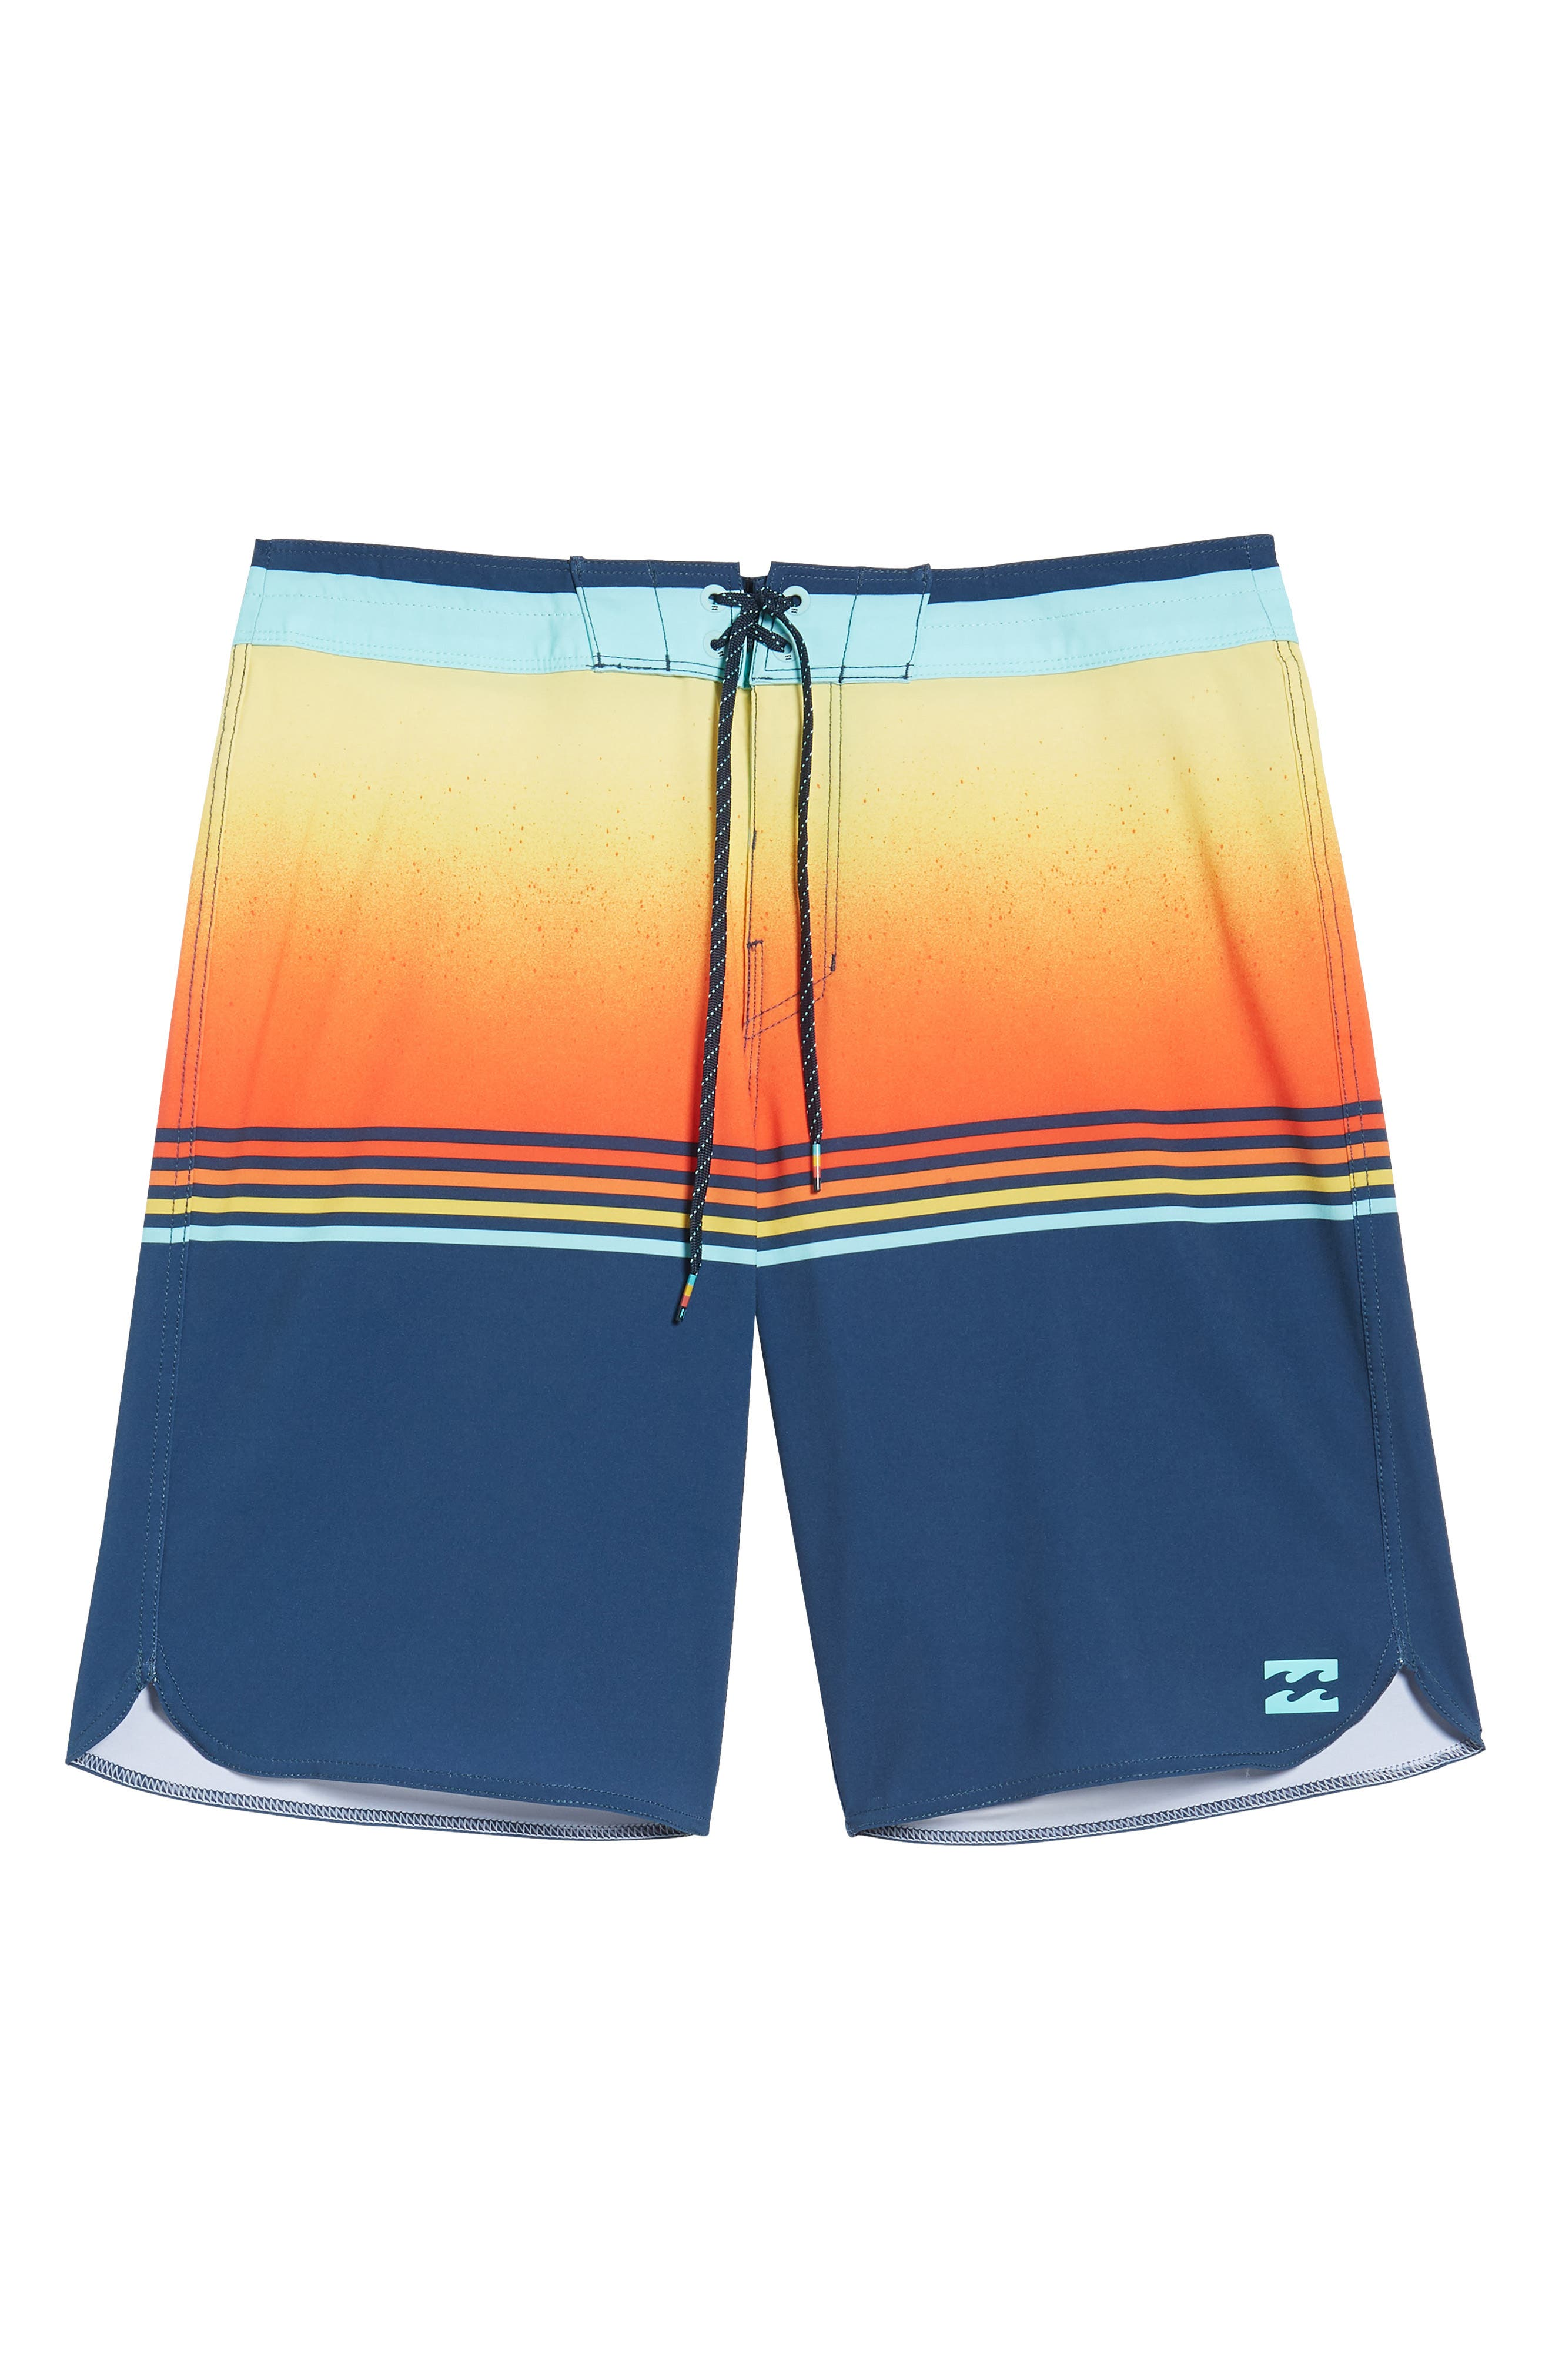 Fifty50 X Board Shorts,                             Alternate thumbnail 6, color,                             810